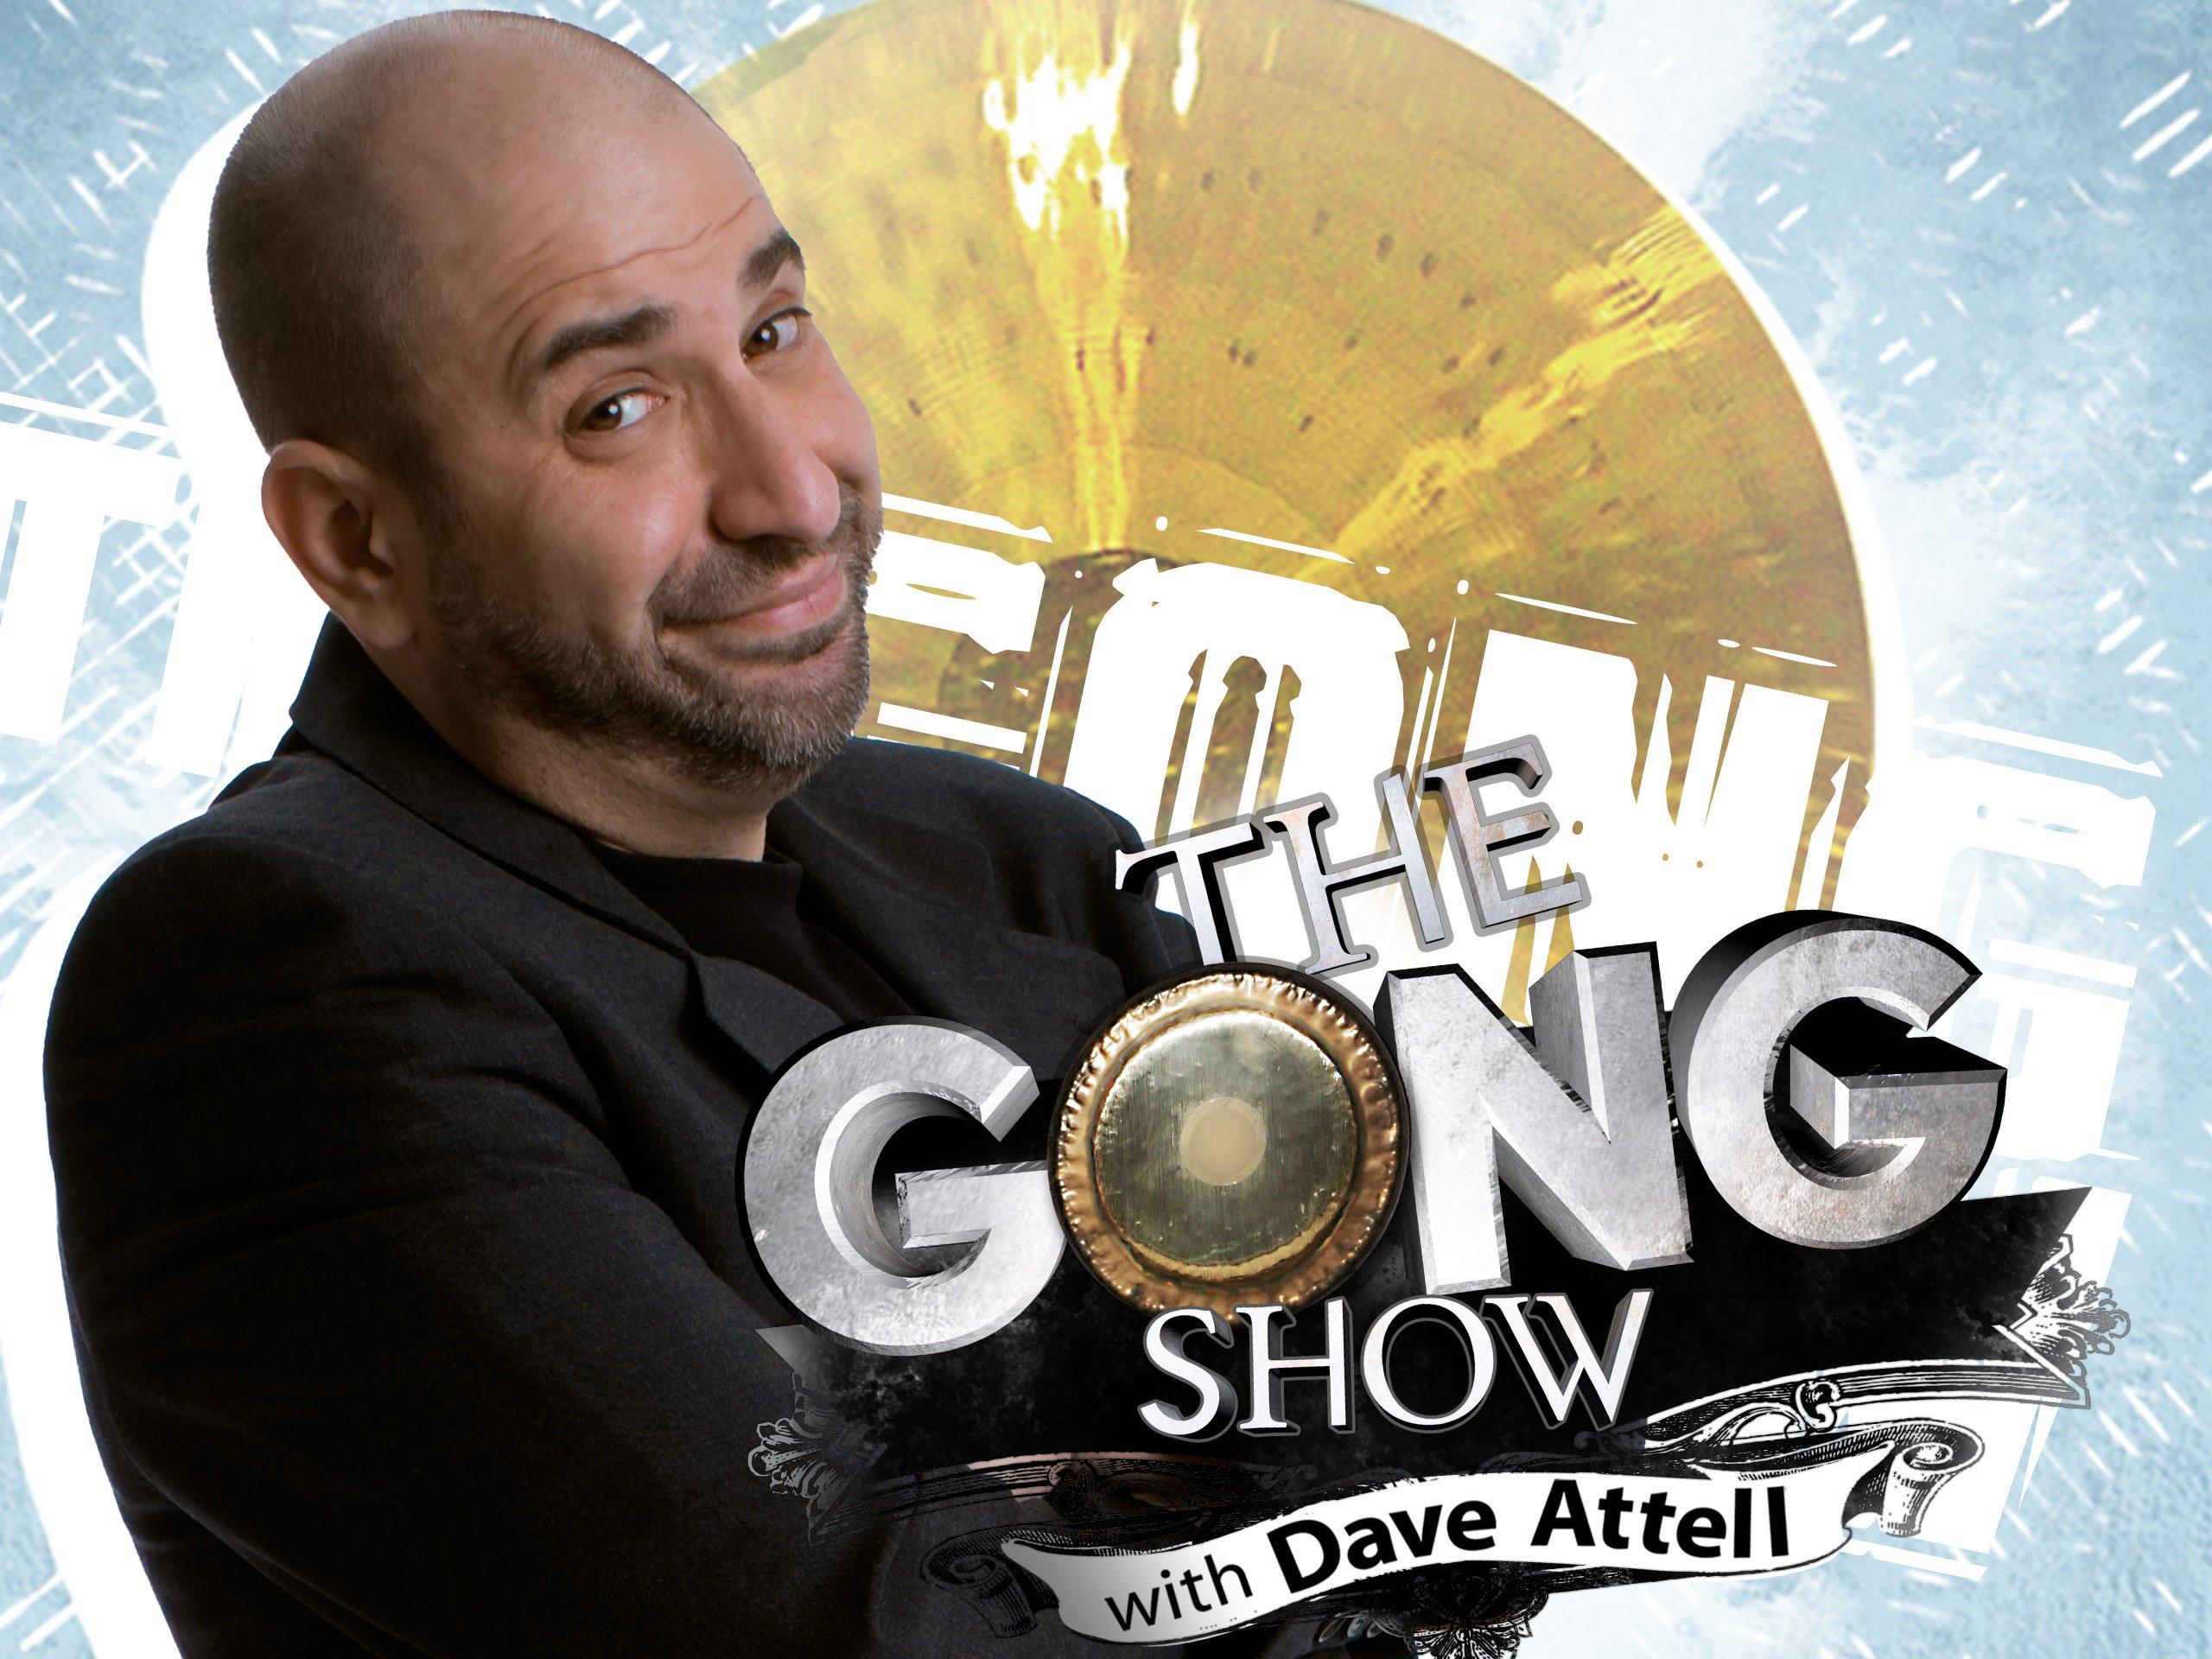 Curious Dave attell midget think